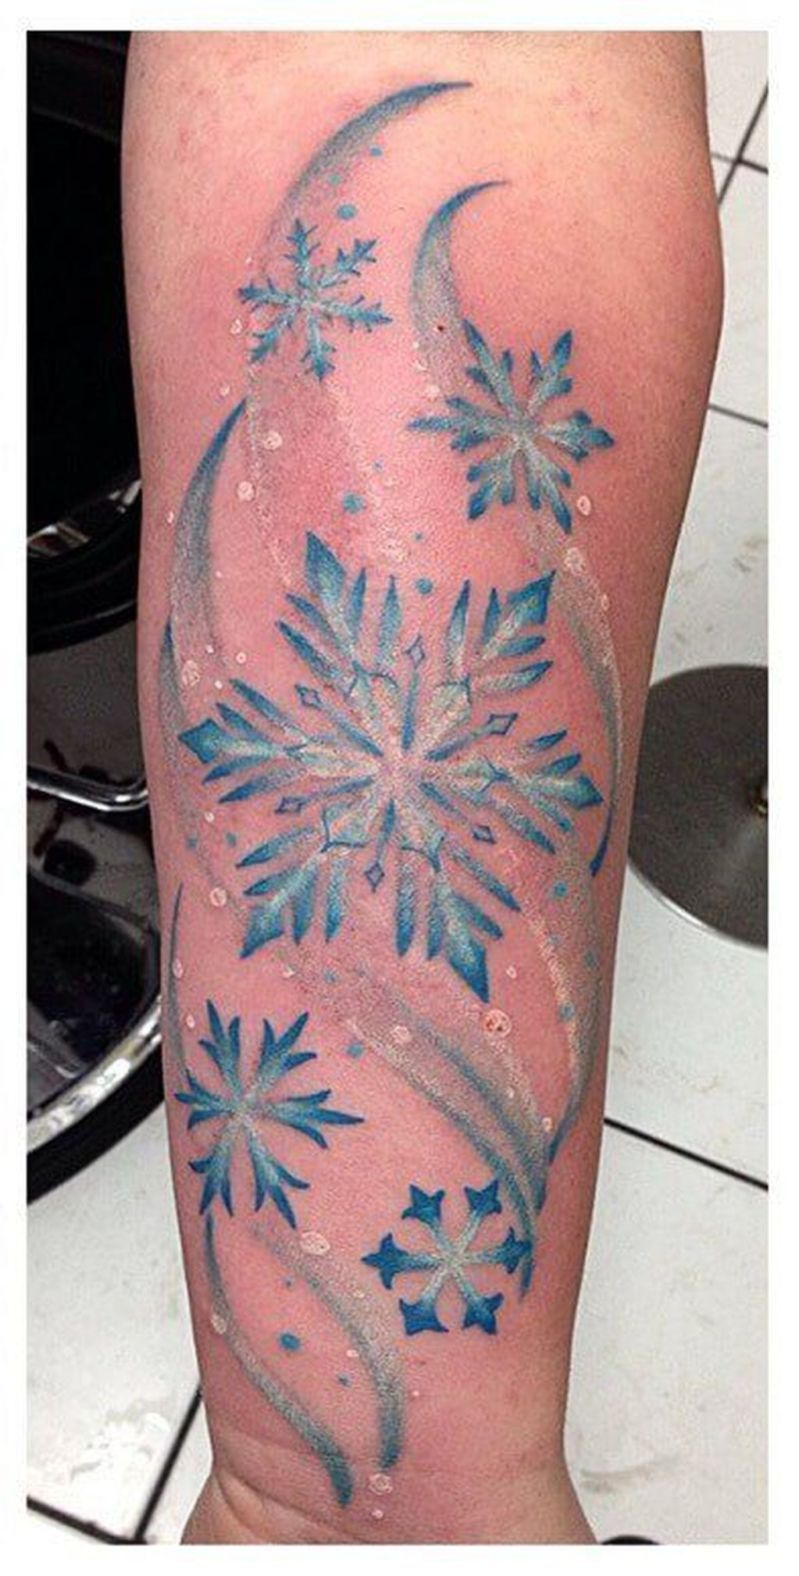 Stunning Arm Christmas Tattoo Design Ideas For Men To